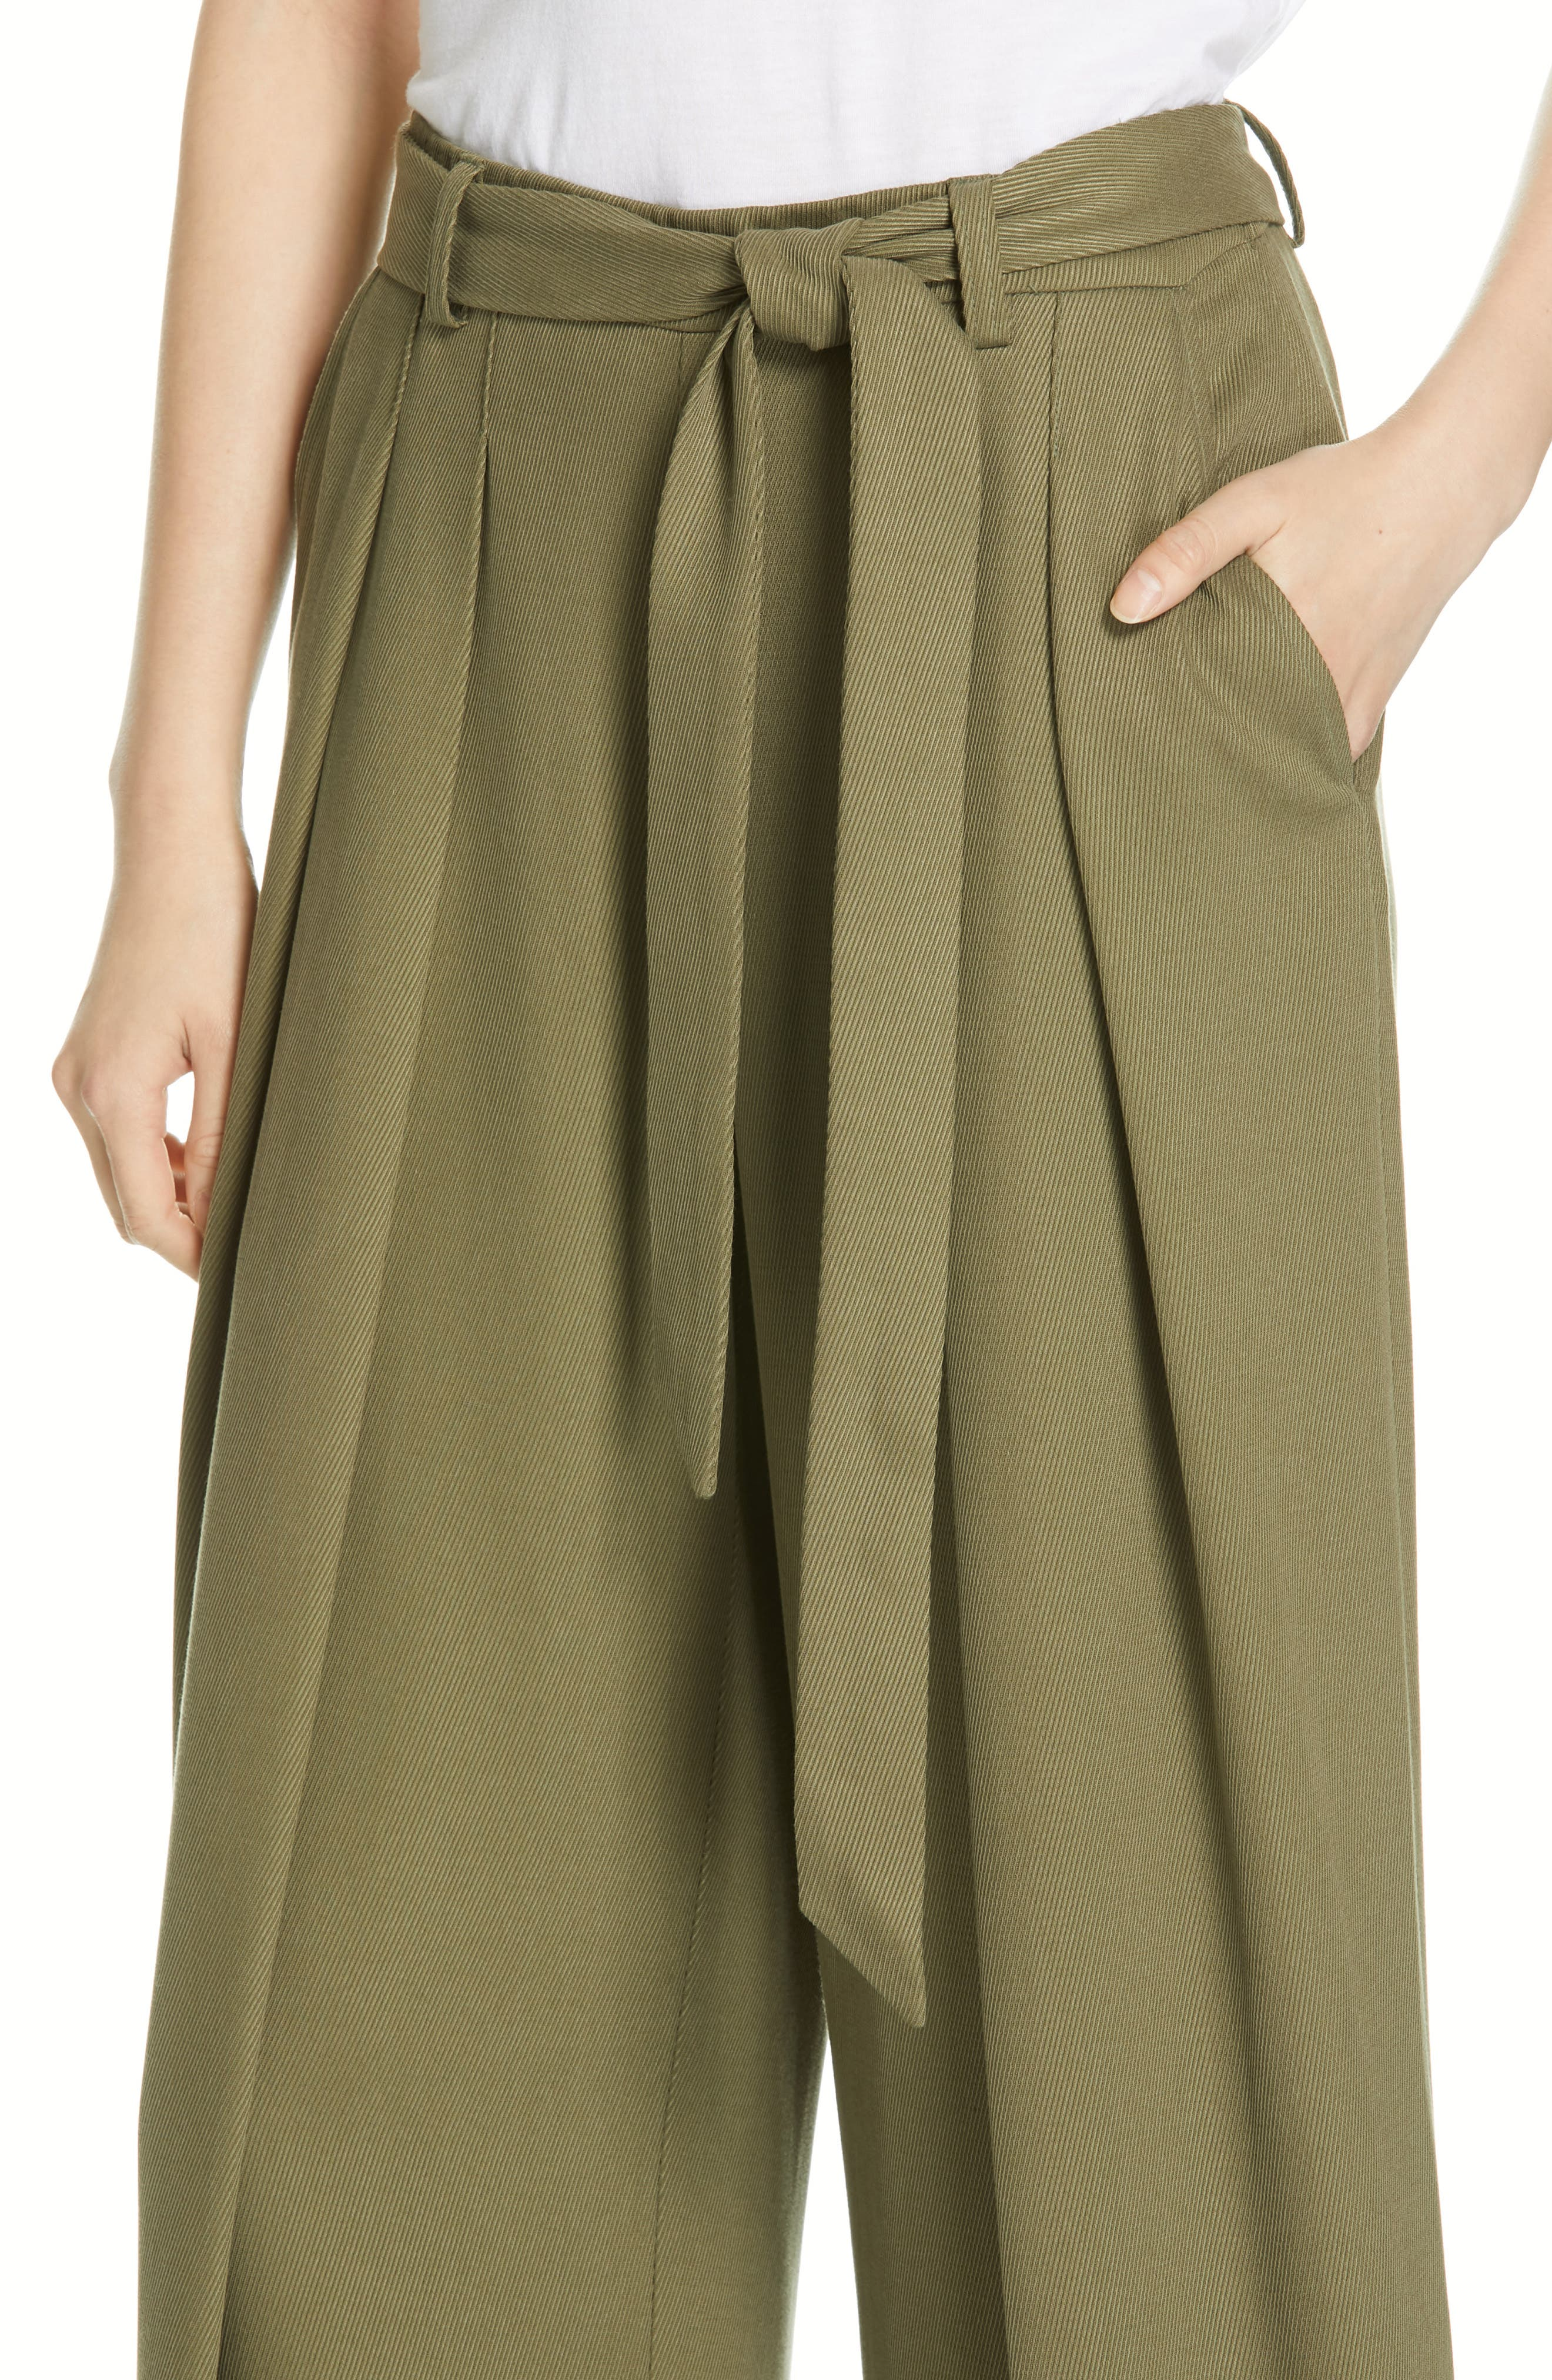 EILEEN FISHER, Belted Wide Leg Pants, Alternate thumbnail 5, color, 301